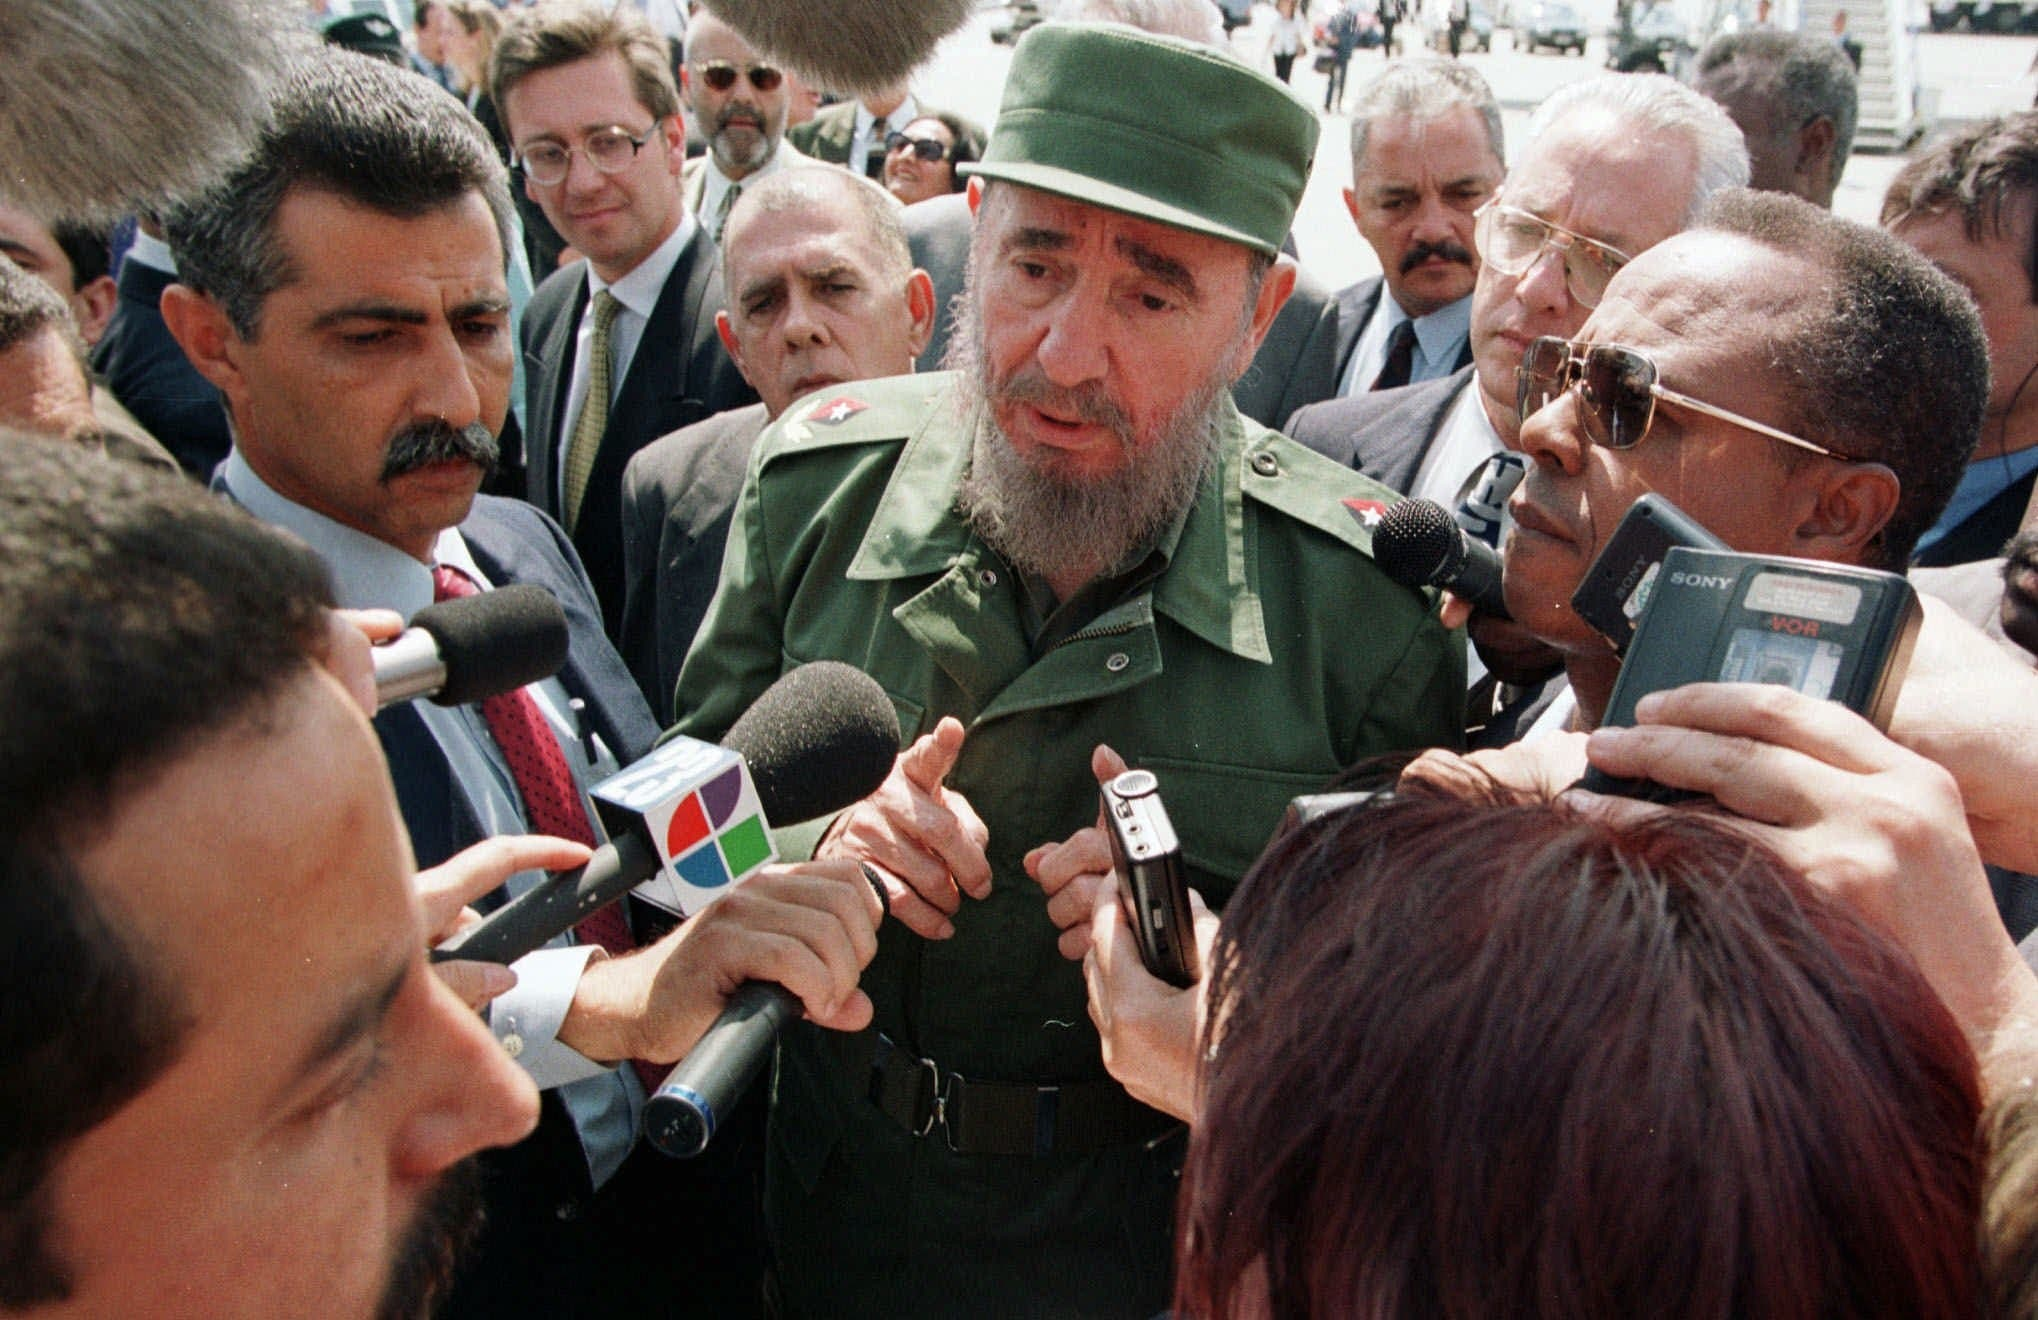 Cuba leader Fidel Castro speaking to journalists on his arrival in Geneva Wednesday, May 13 1998, to participate in the 50th anniversary of the WHO (World Health Organisation) on Thursday, May 14, and also the 50th anniversary of the WTO (World Trade Organisation) on Monday, May 18. (AP)